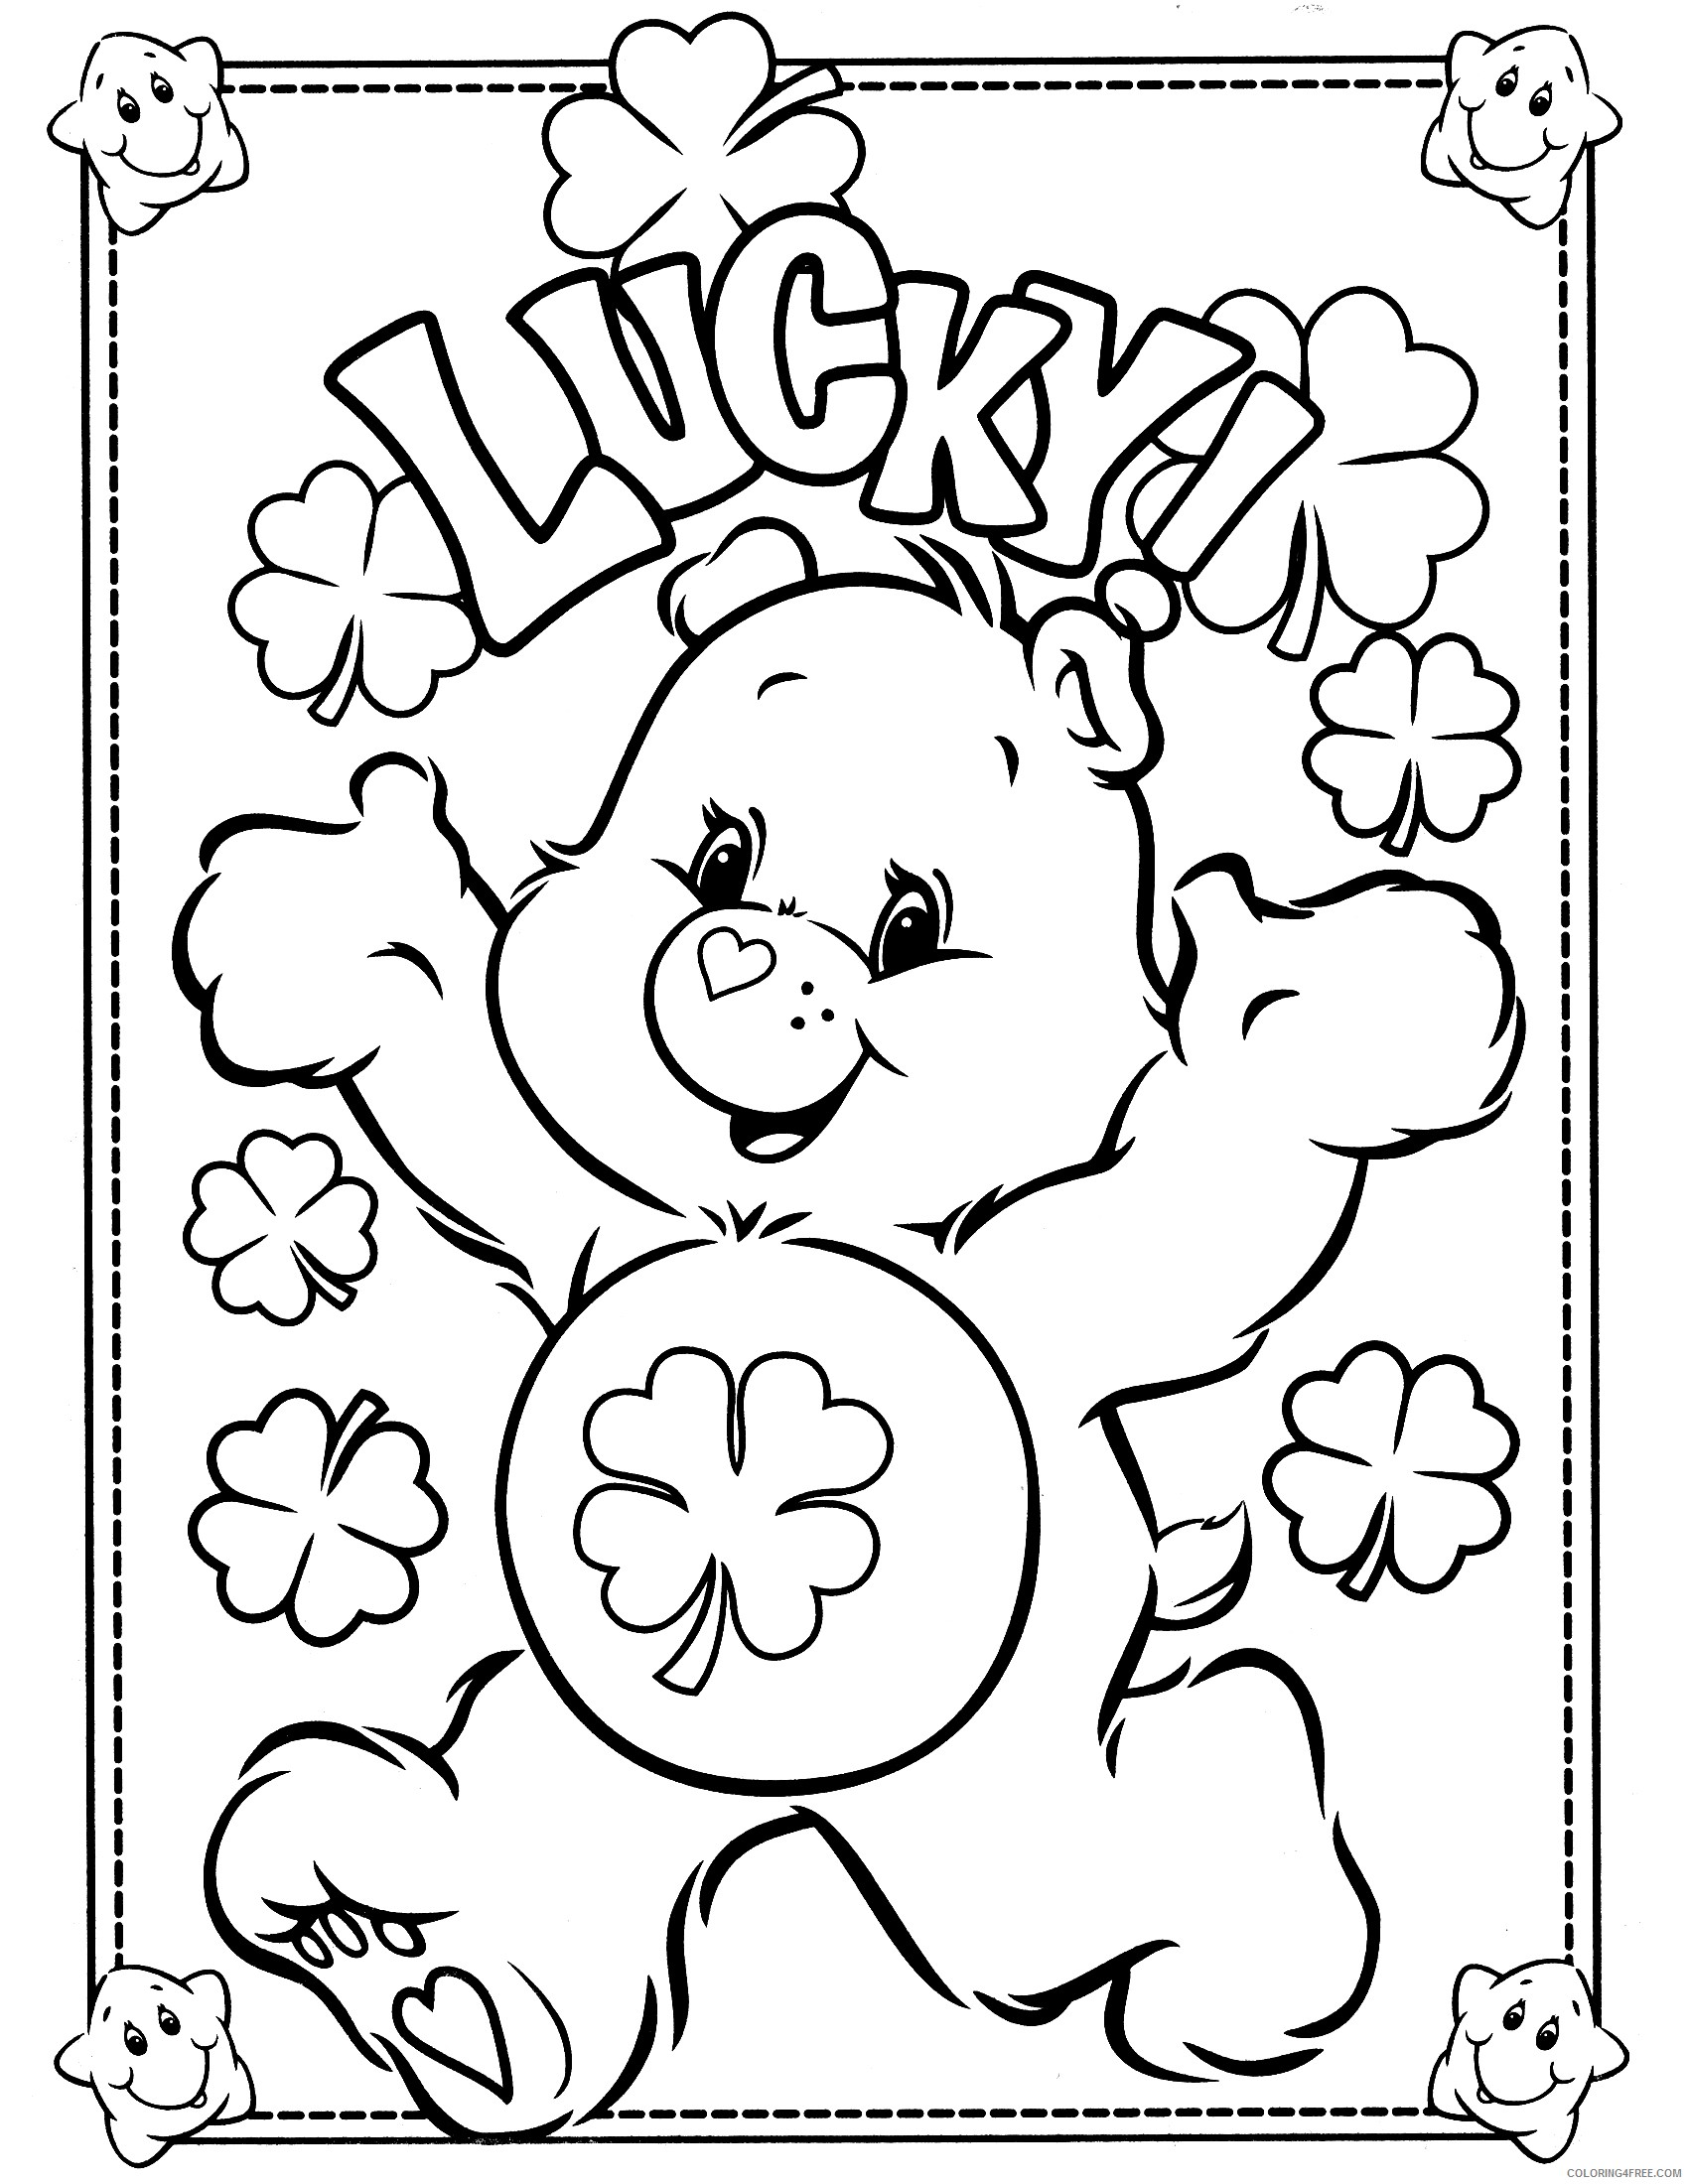 care bears coloring pages good luck Coloring4free